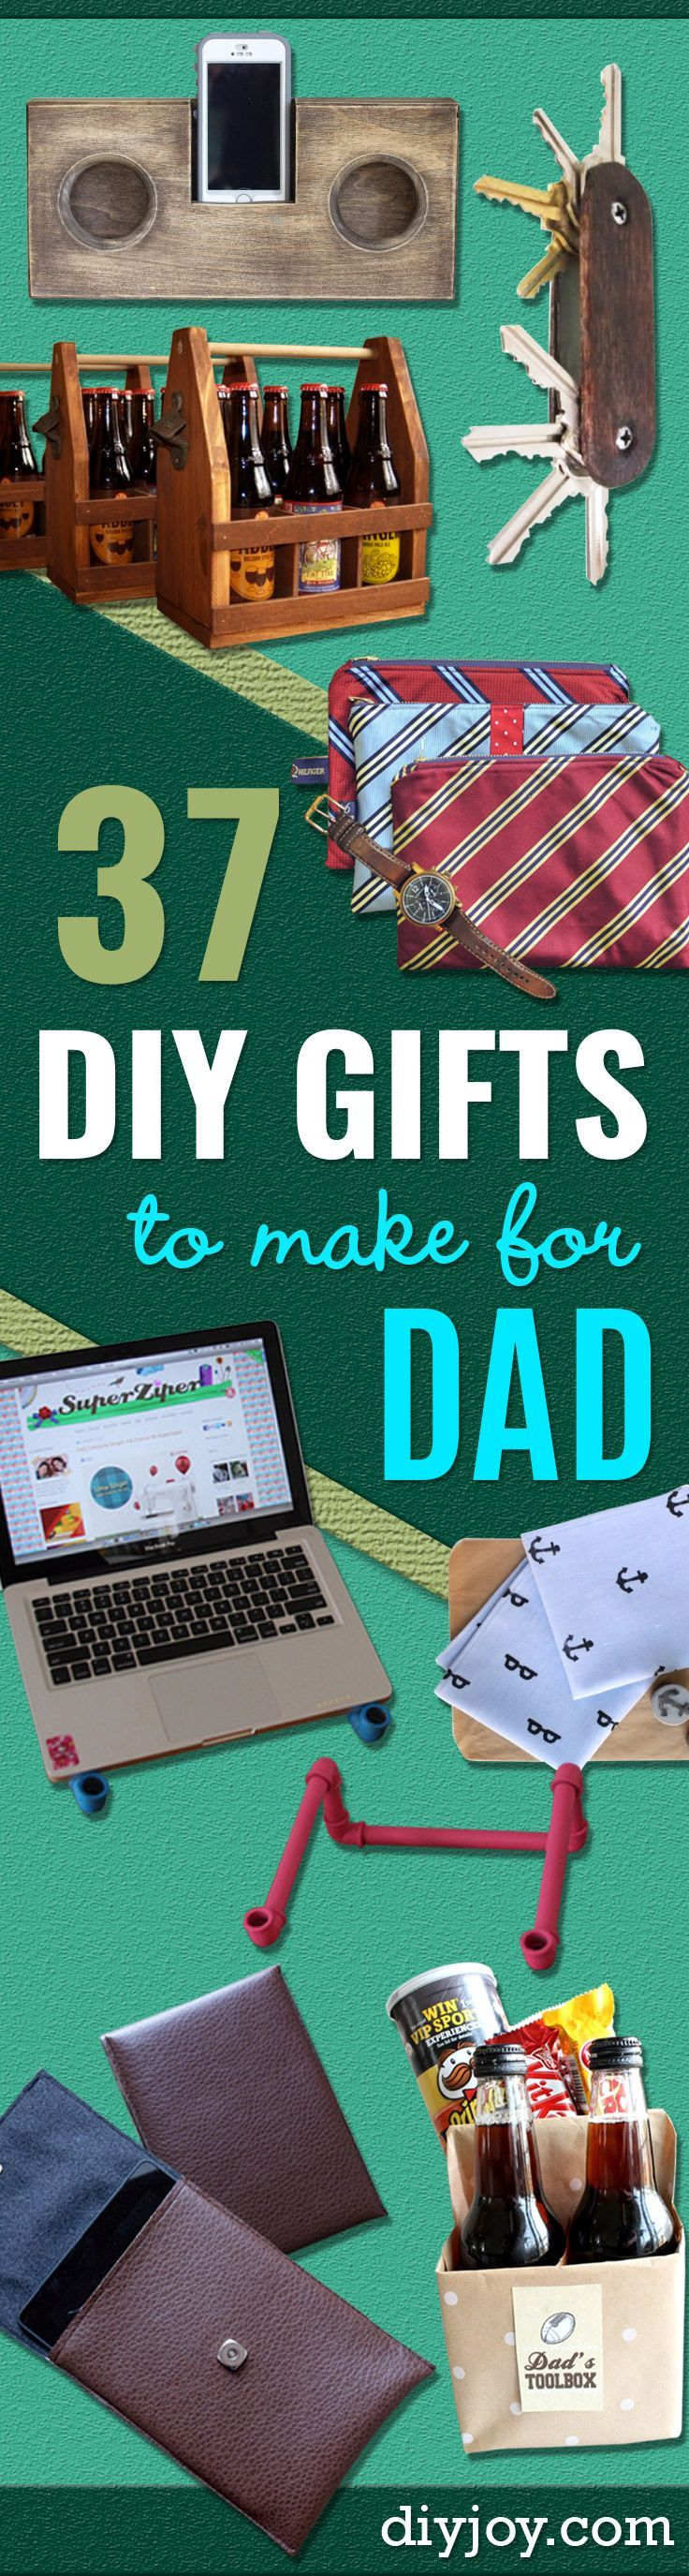 37 Awesome DIY Gifts to Make for Dad Diy gifts to make